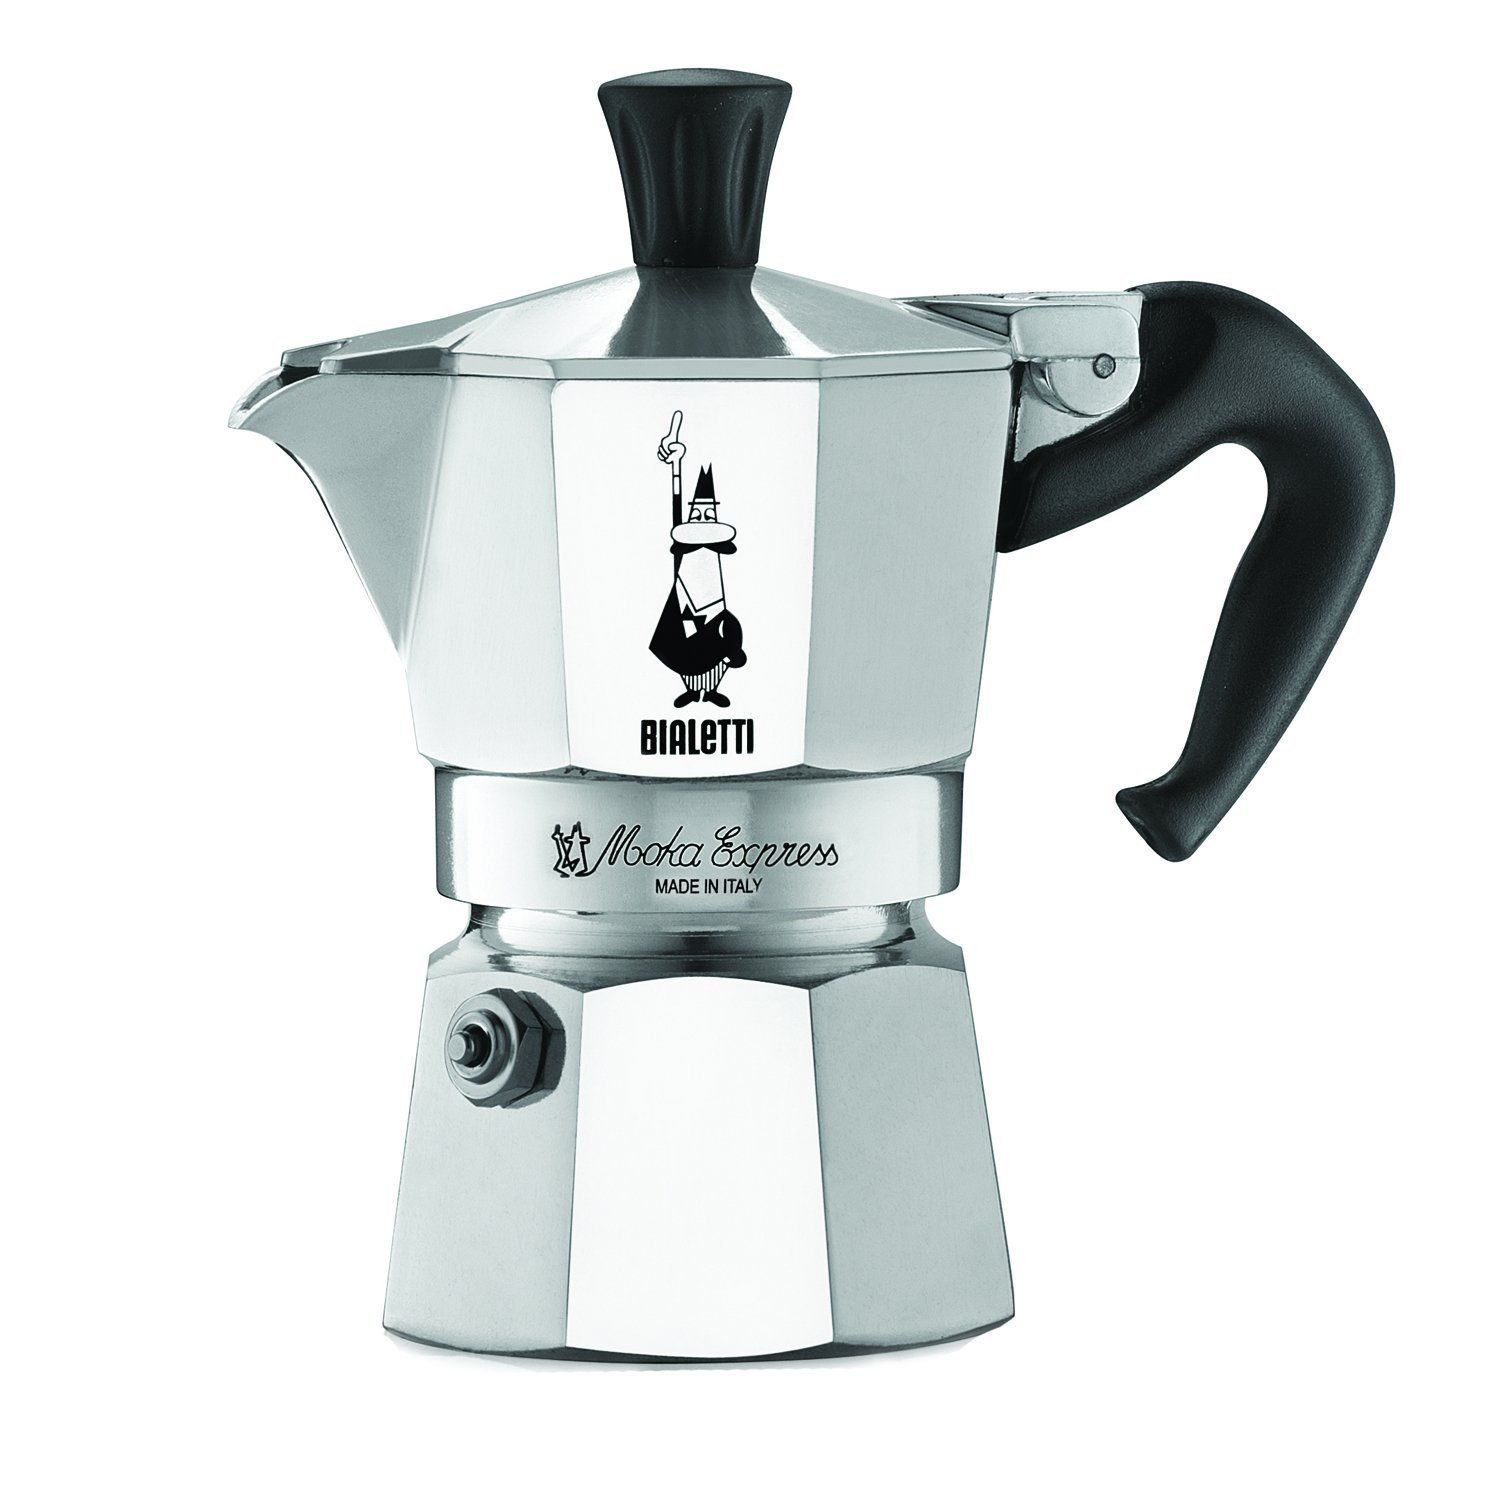 Cheap Professional Espresso Maker Find Rok Presso Manual Classic Get Quotations Bialetti 9 Cup Moka Express Stovetop Coffee Pot Latte 18 Ounce